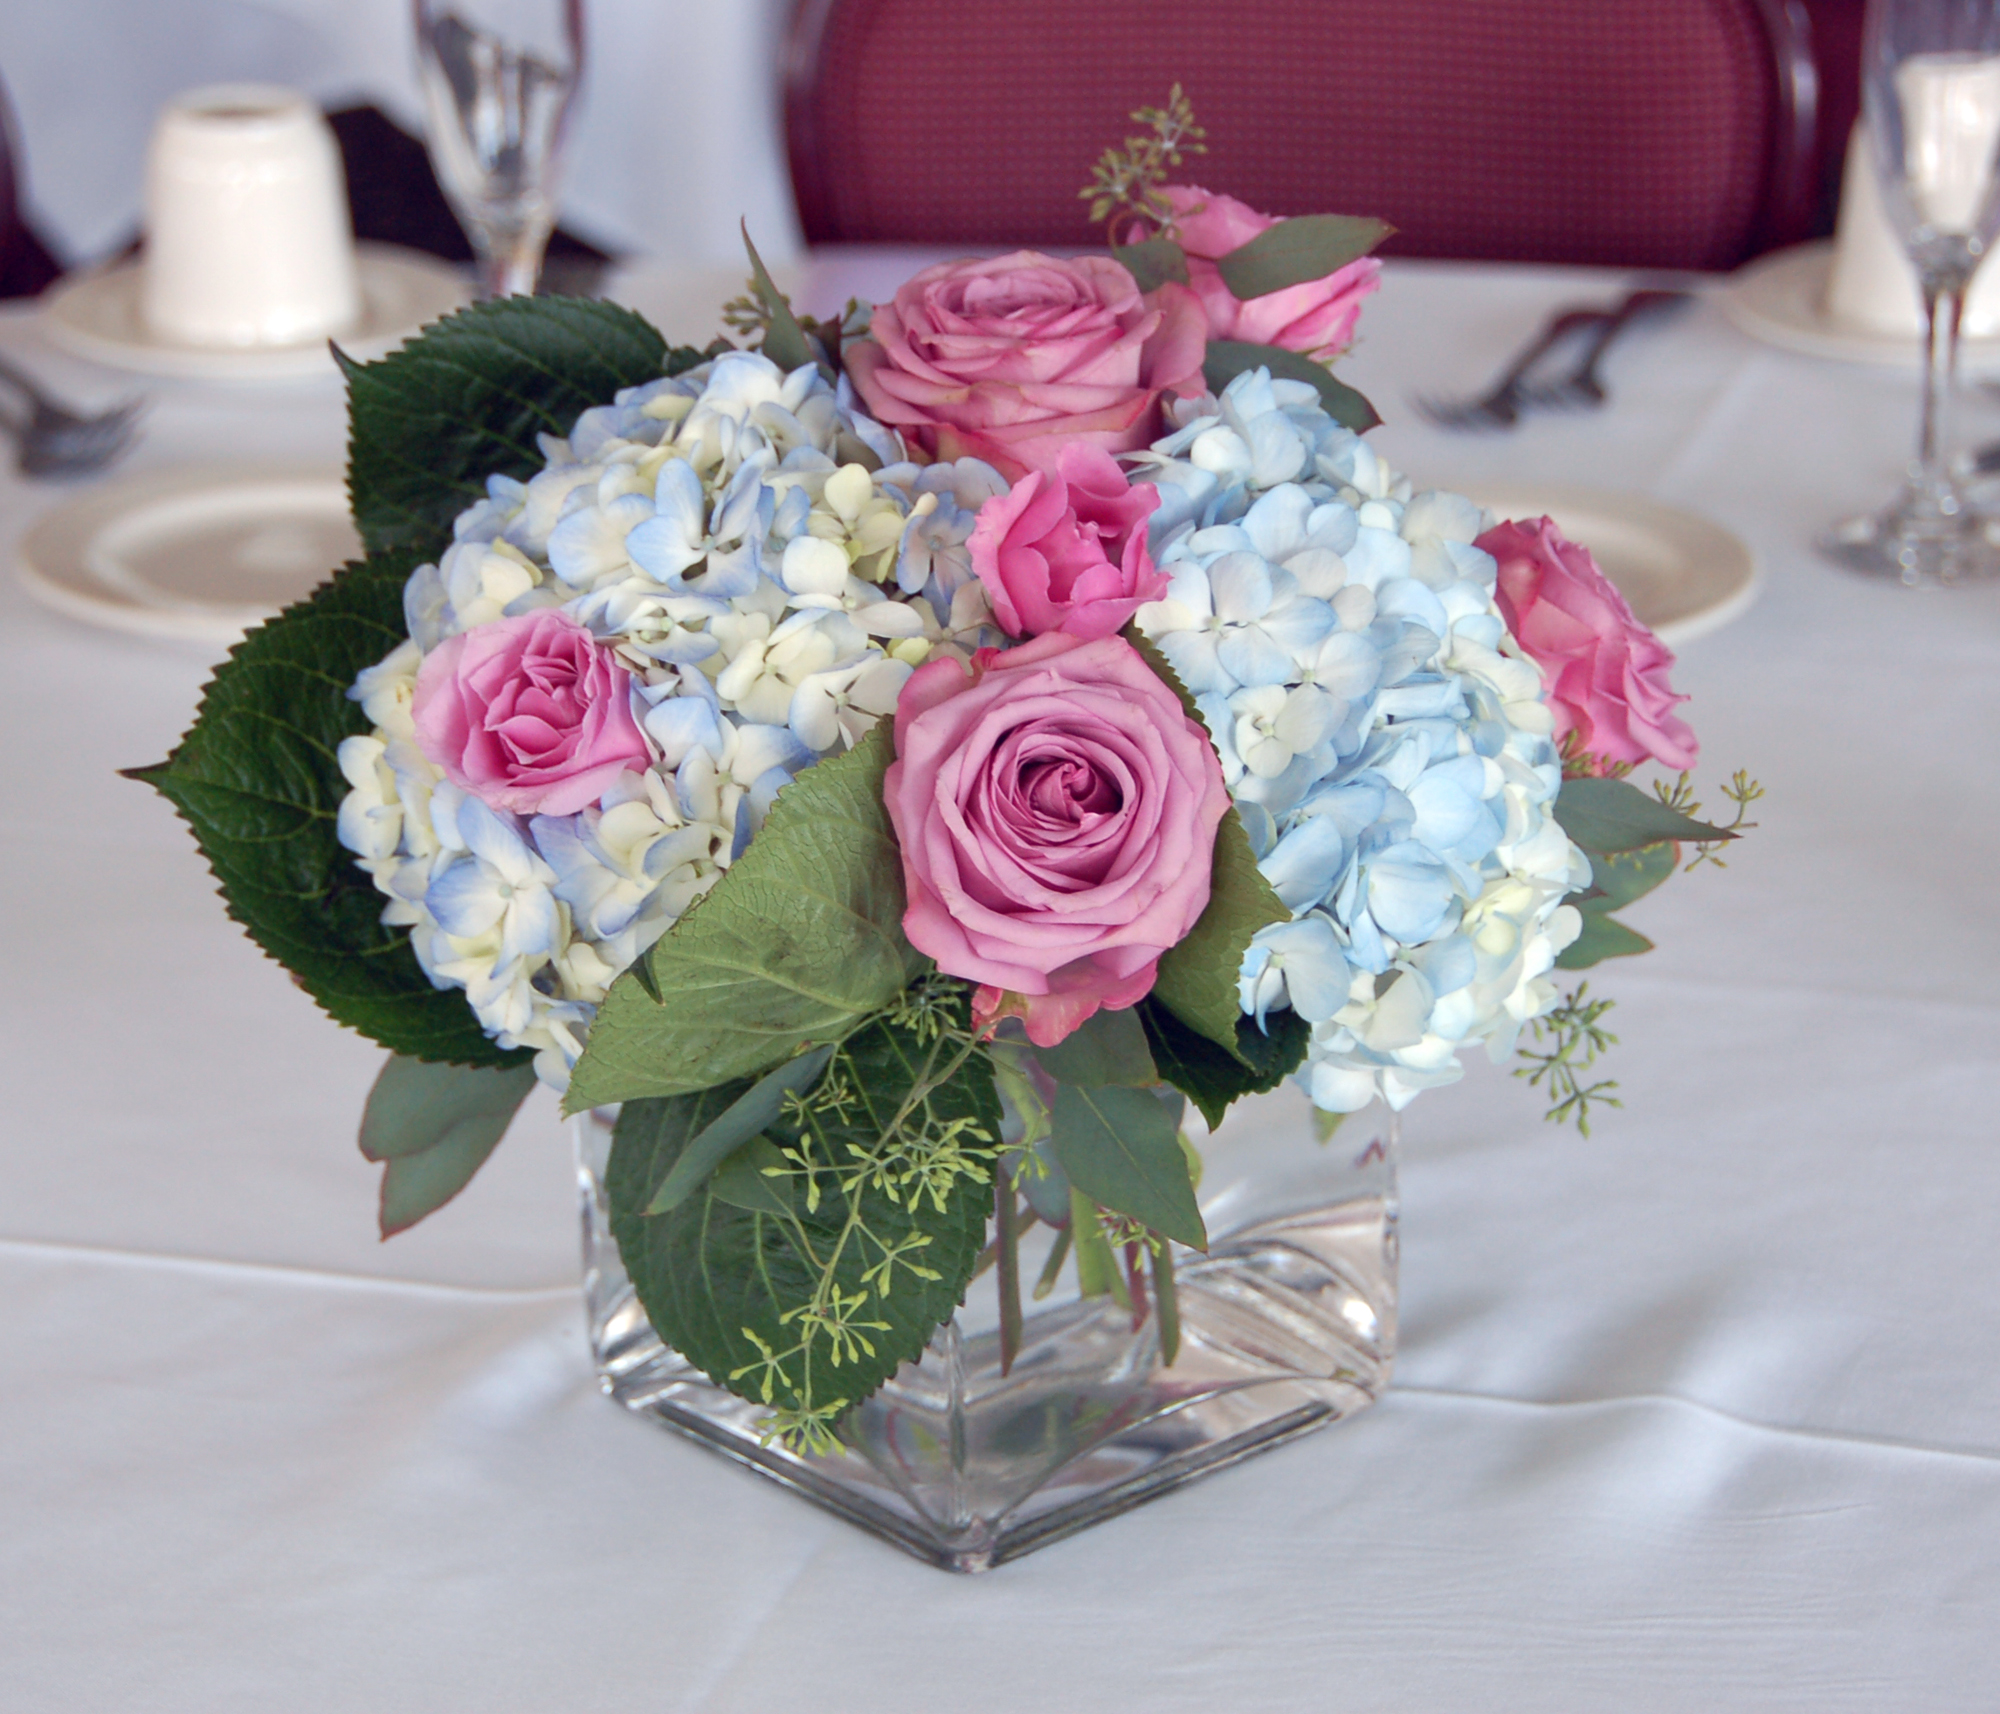 Make your fresh flowers last longer with these tricks for Table arrangements